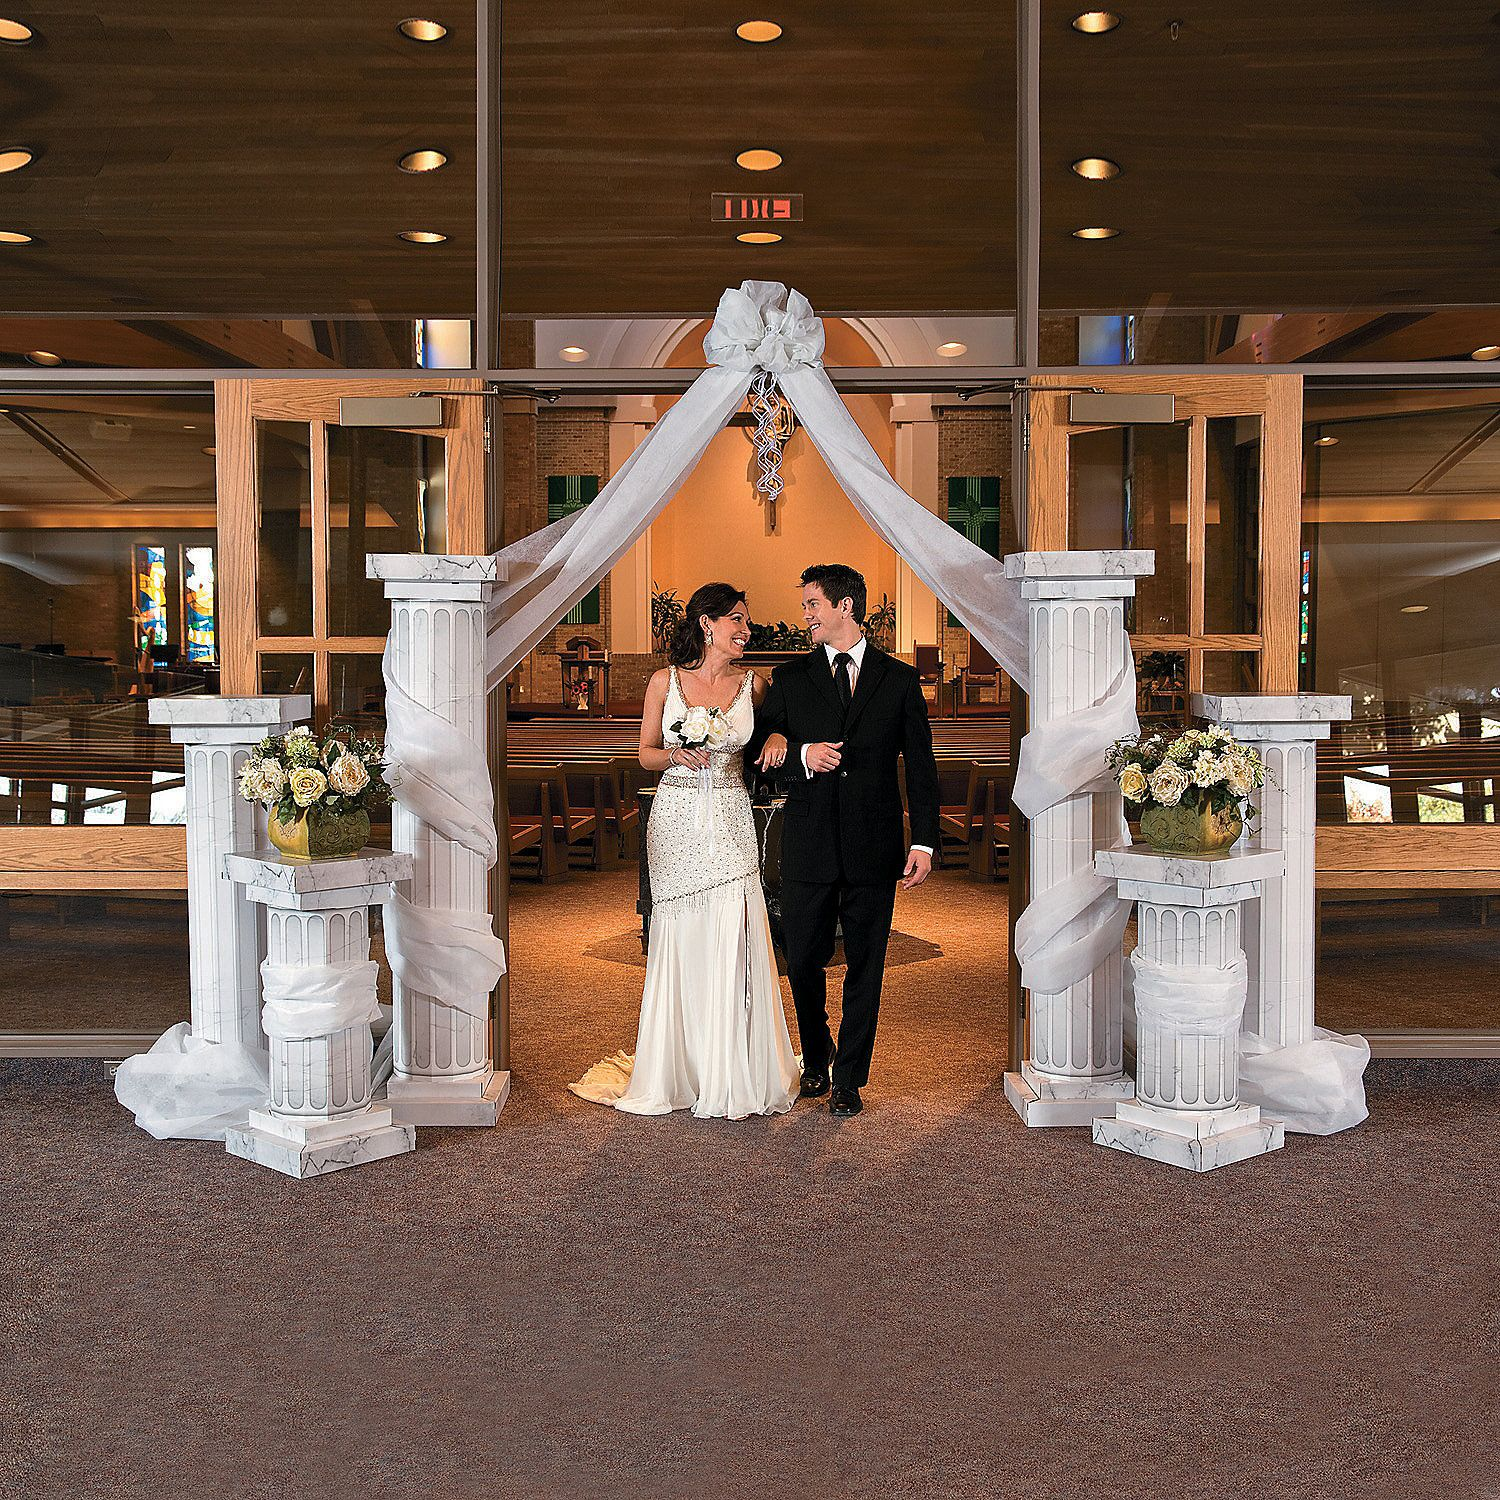 Wedding columns gossamer draping get the look of your dreams wedding columns gossamer draping get the look of your dreams without blowing your wedding budget add these columns to your wedding ceremony or reception junglespirit Choice Image